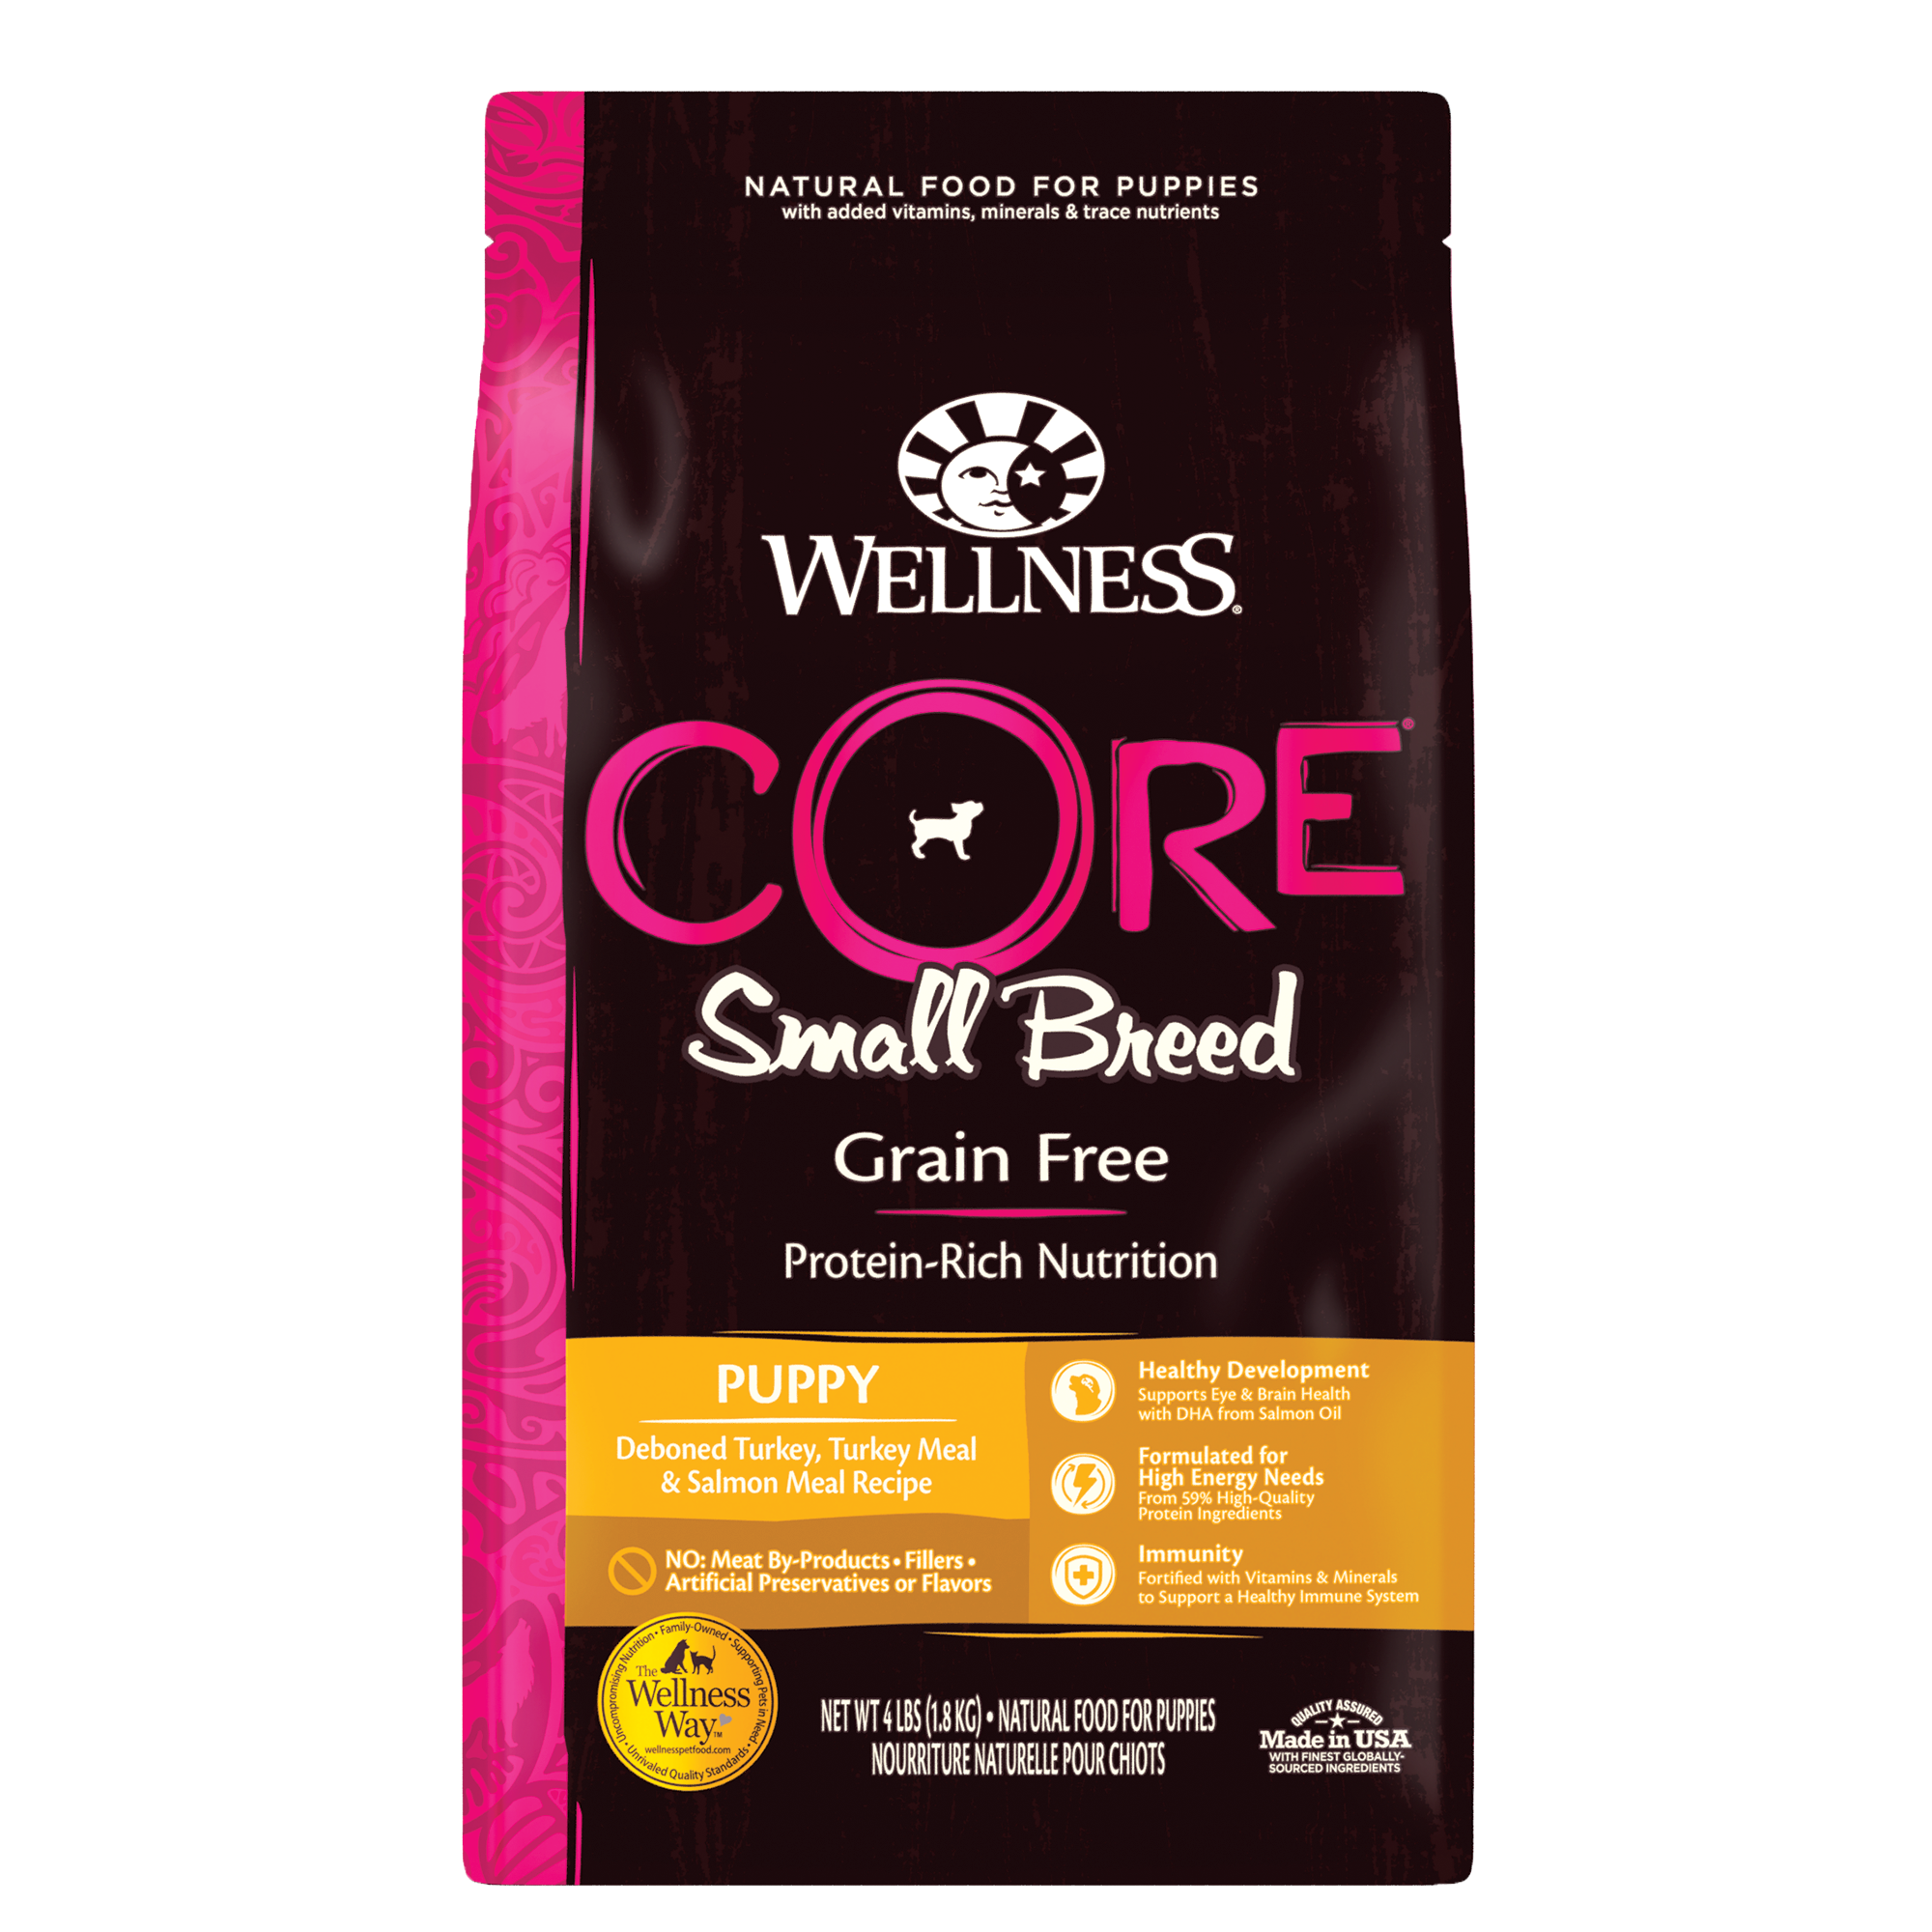 Wellness CORE Small Breed Puppy Dry Dog Food